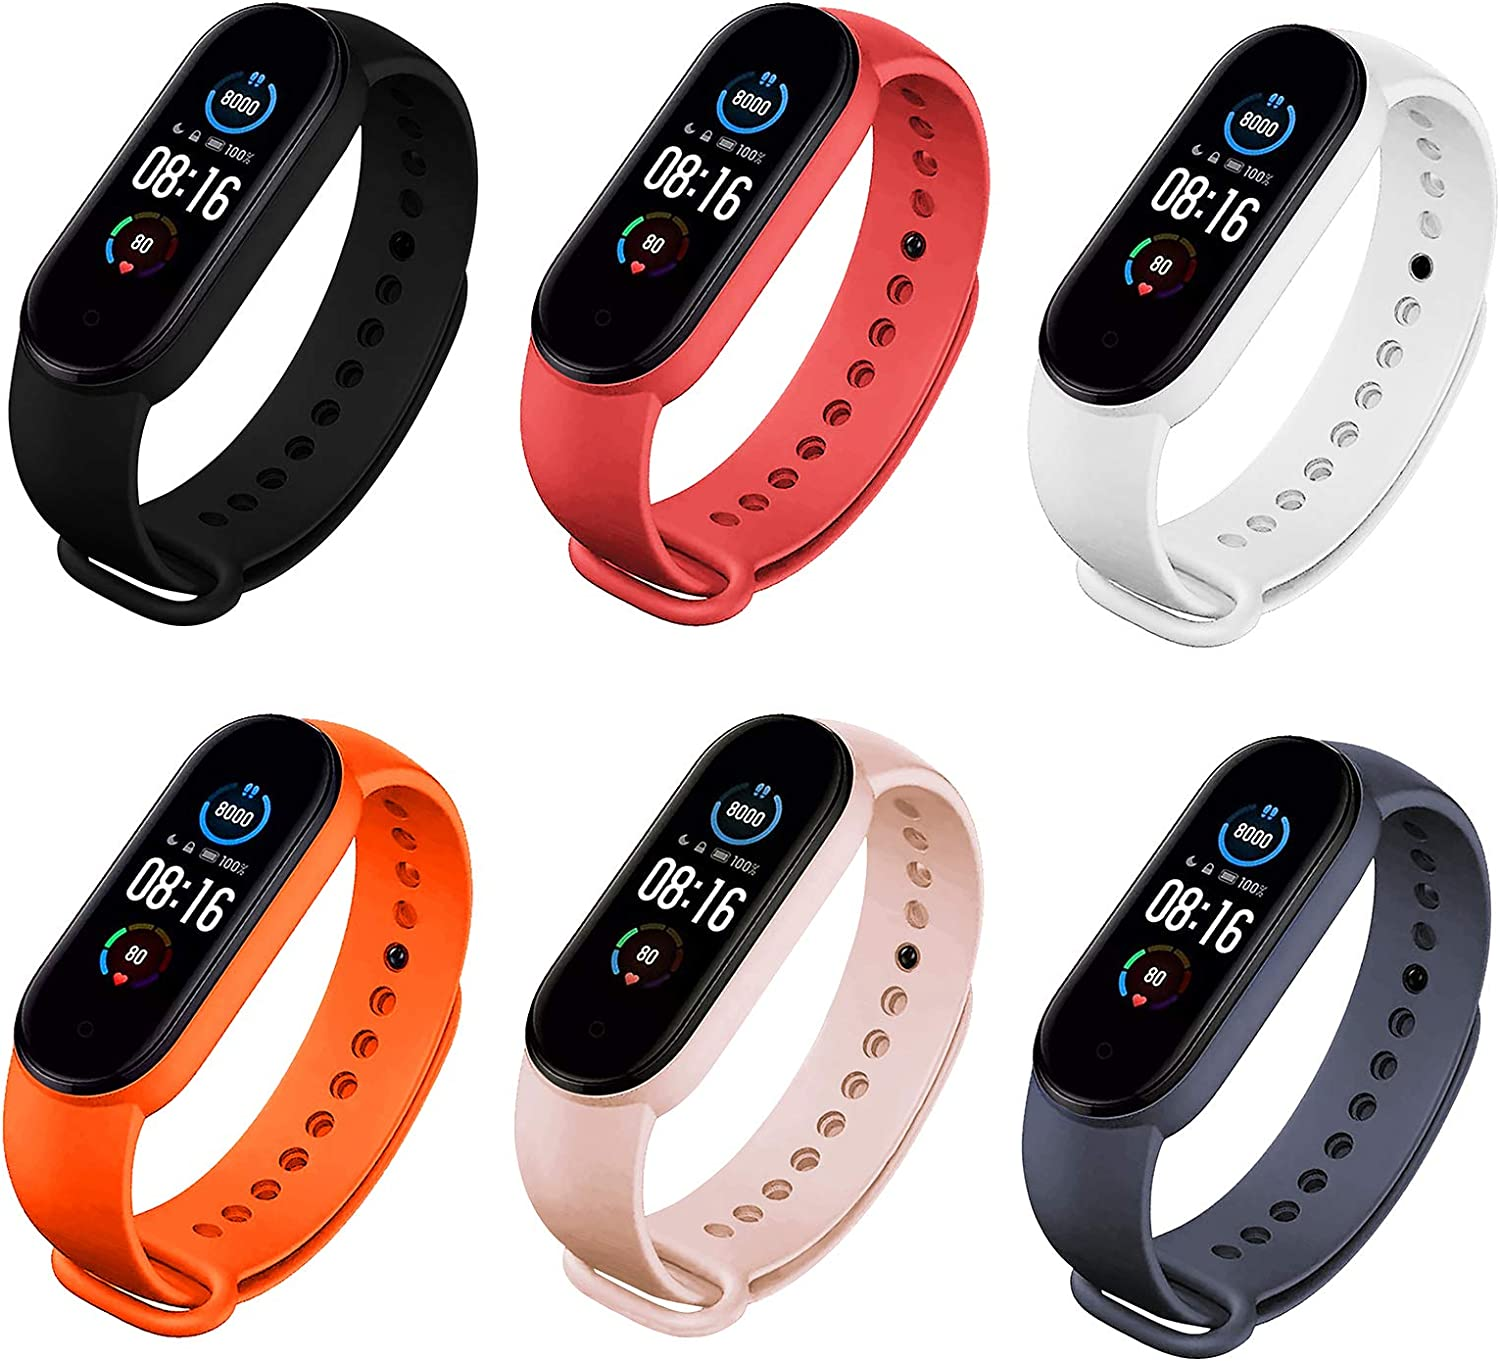 COLAPOO 6PCS Bands Compatible with Xiaomi Mi Band 5,Silicone Waterproof Strap for Mi 5 Smart Bracelet for Men Women (Black/Red/White/Orange/Pink/Midnight Blue)